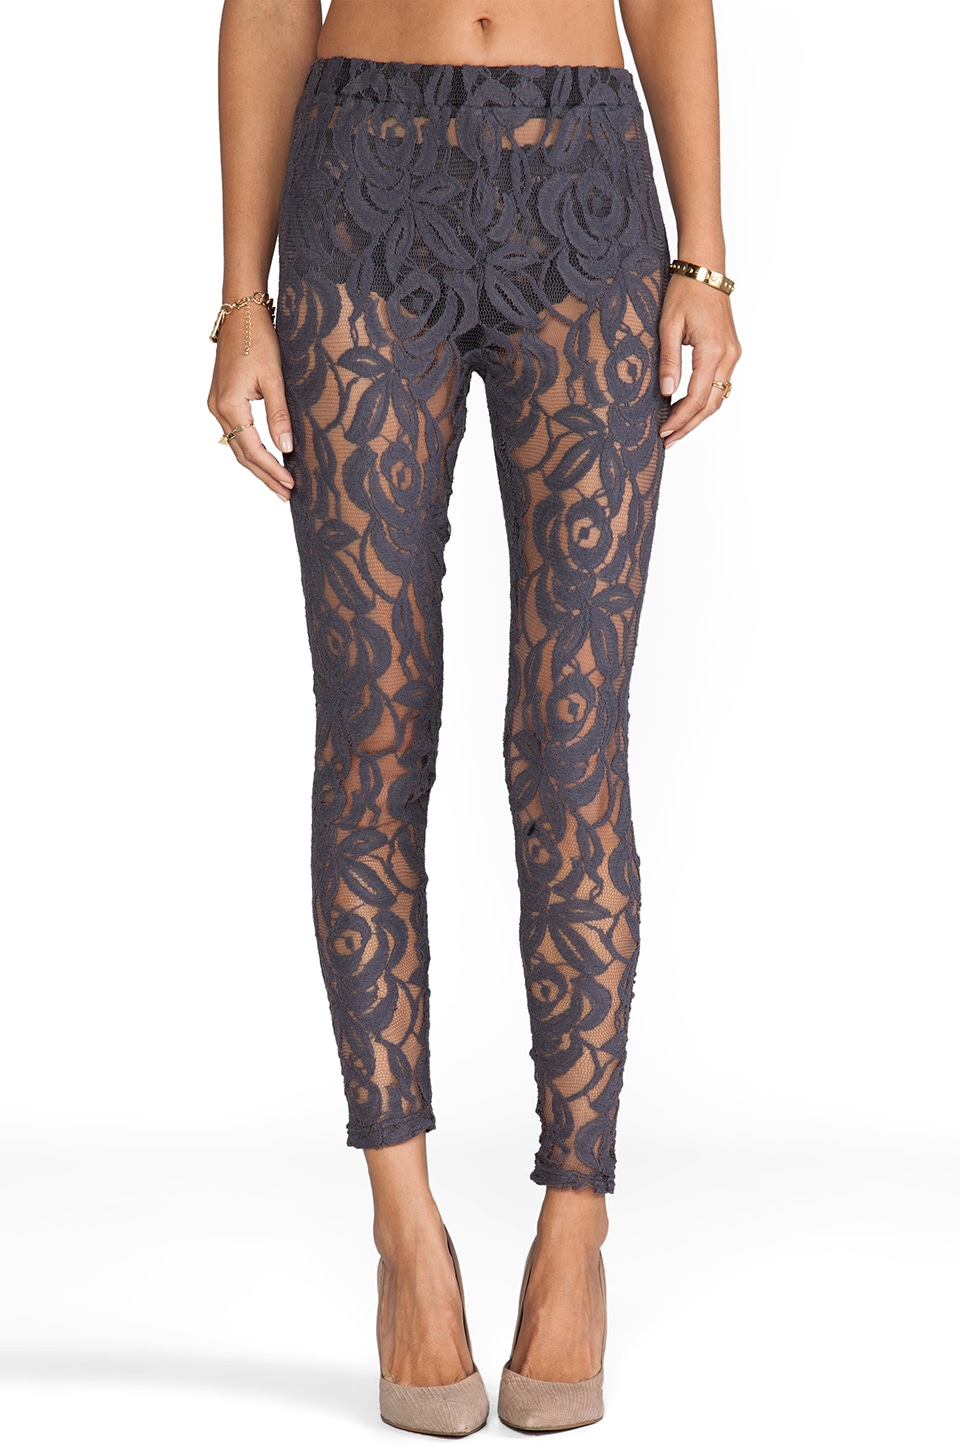 Lisa Maree Hunting Begins Lace Leggings in Acid Black